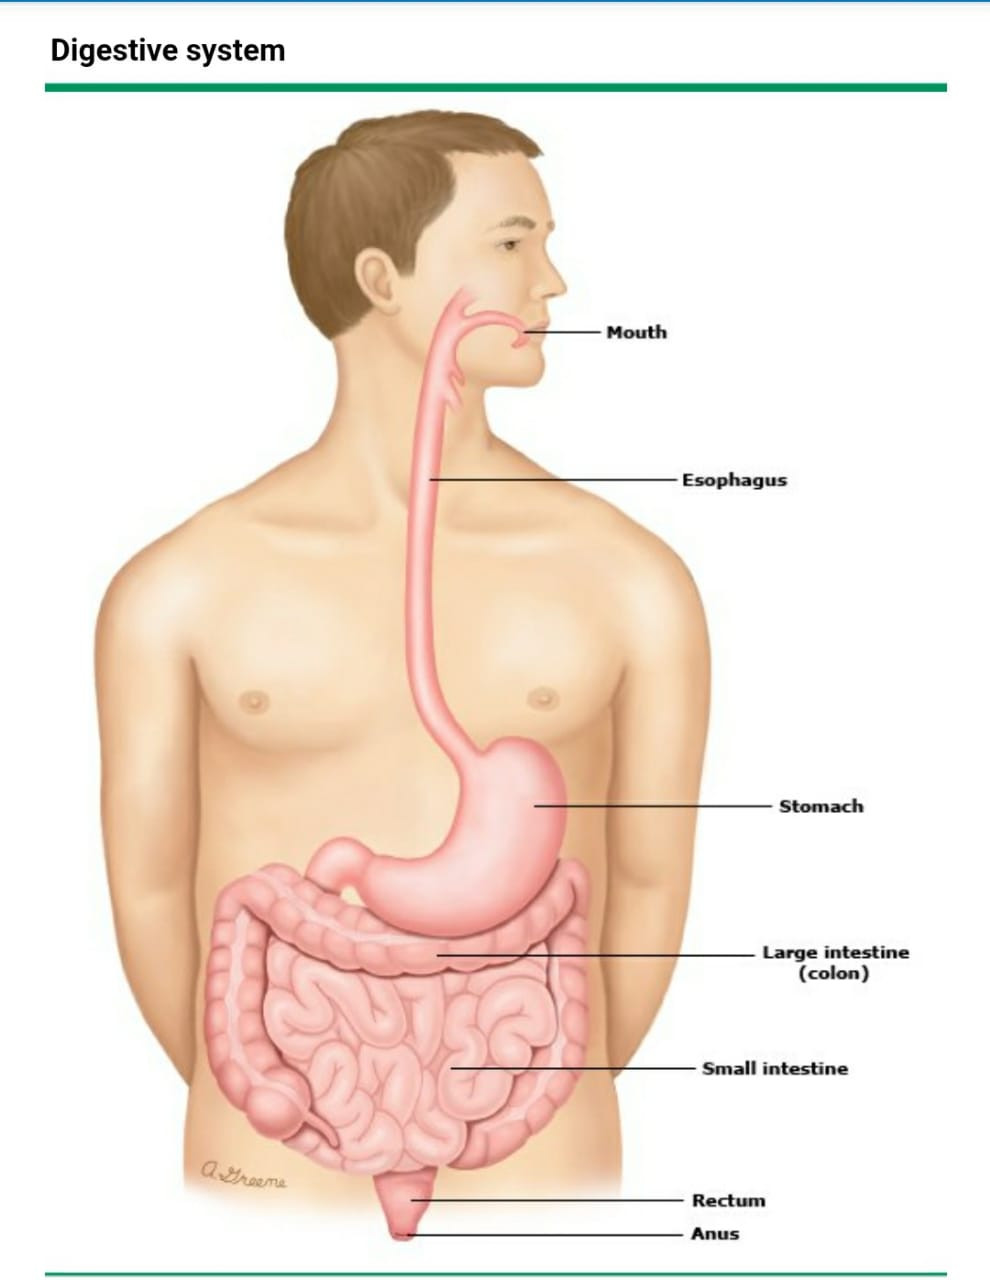 Crohns disease is treated by a Gastroenterologist